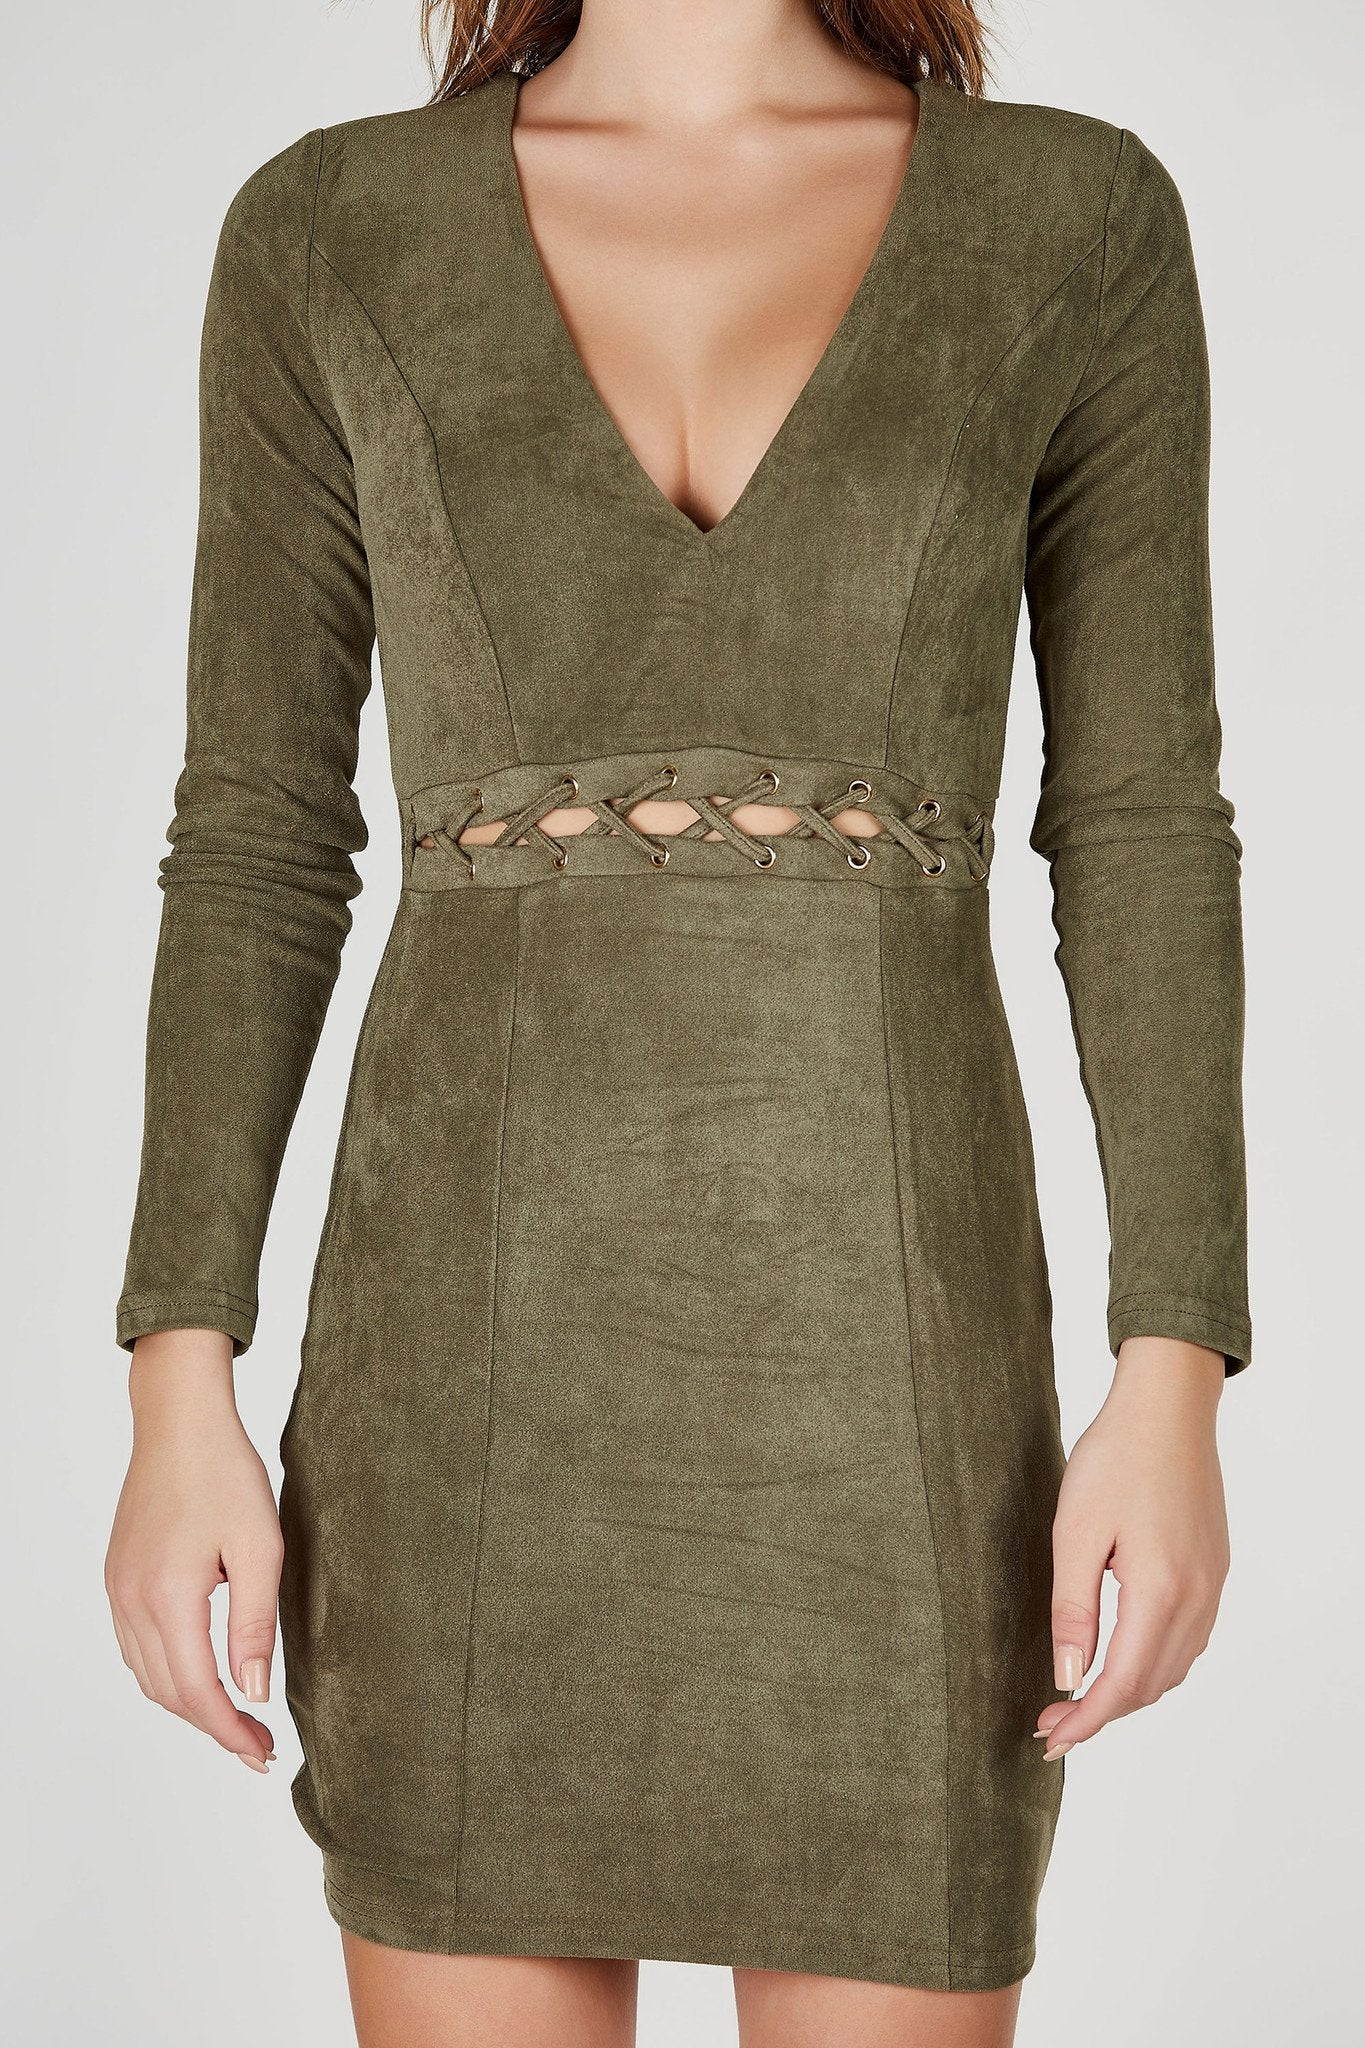 A fashionista's dream- this gorgeous long sleeve mini dress provides the perfect, most flattering fit! Trendy lace up detailing at waist for a chic peek-a-boo effect. Classic V-neckline with the softest suede finish both inside and out!